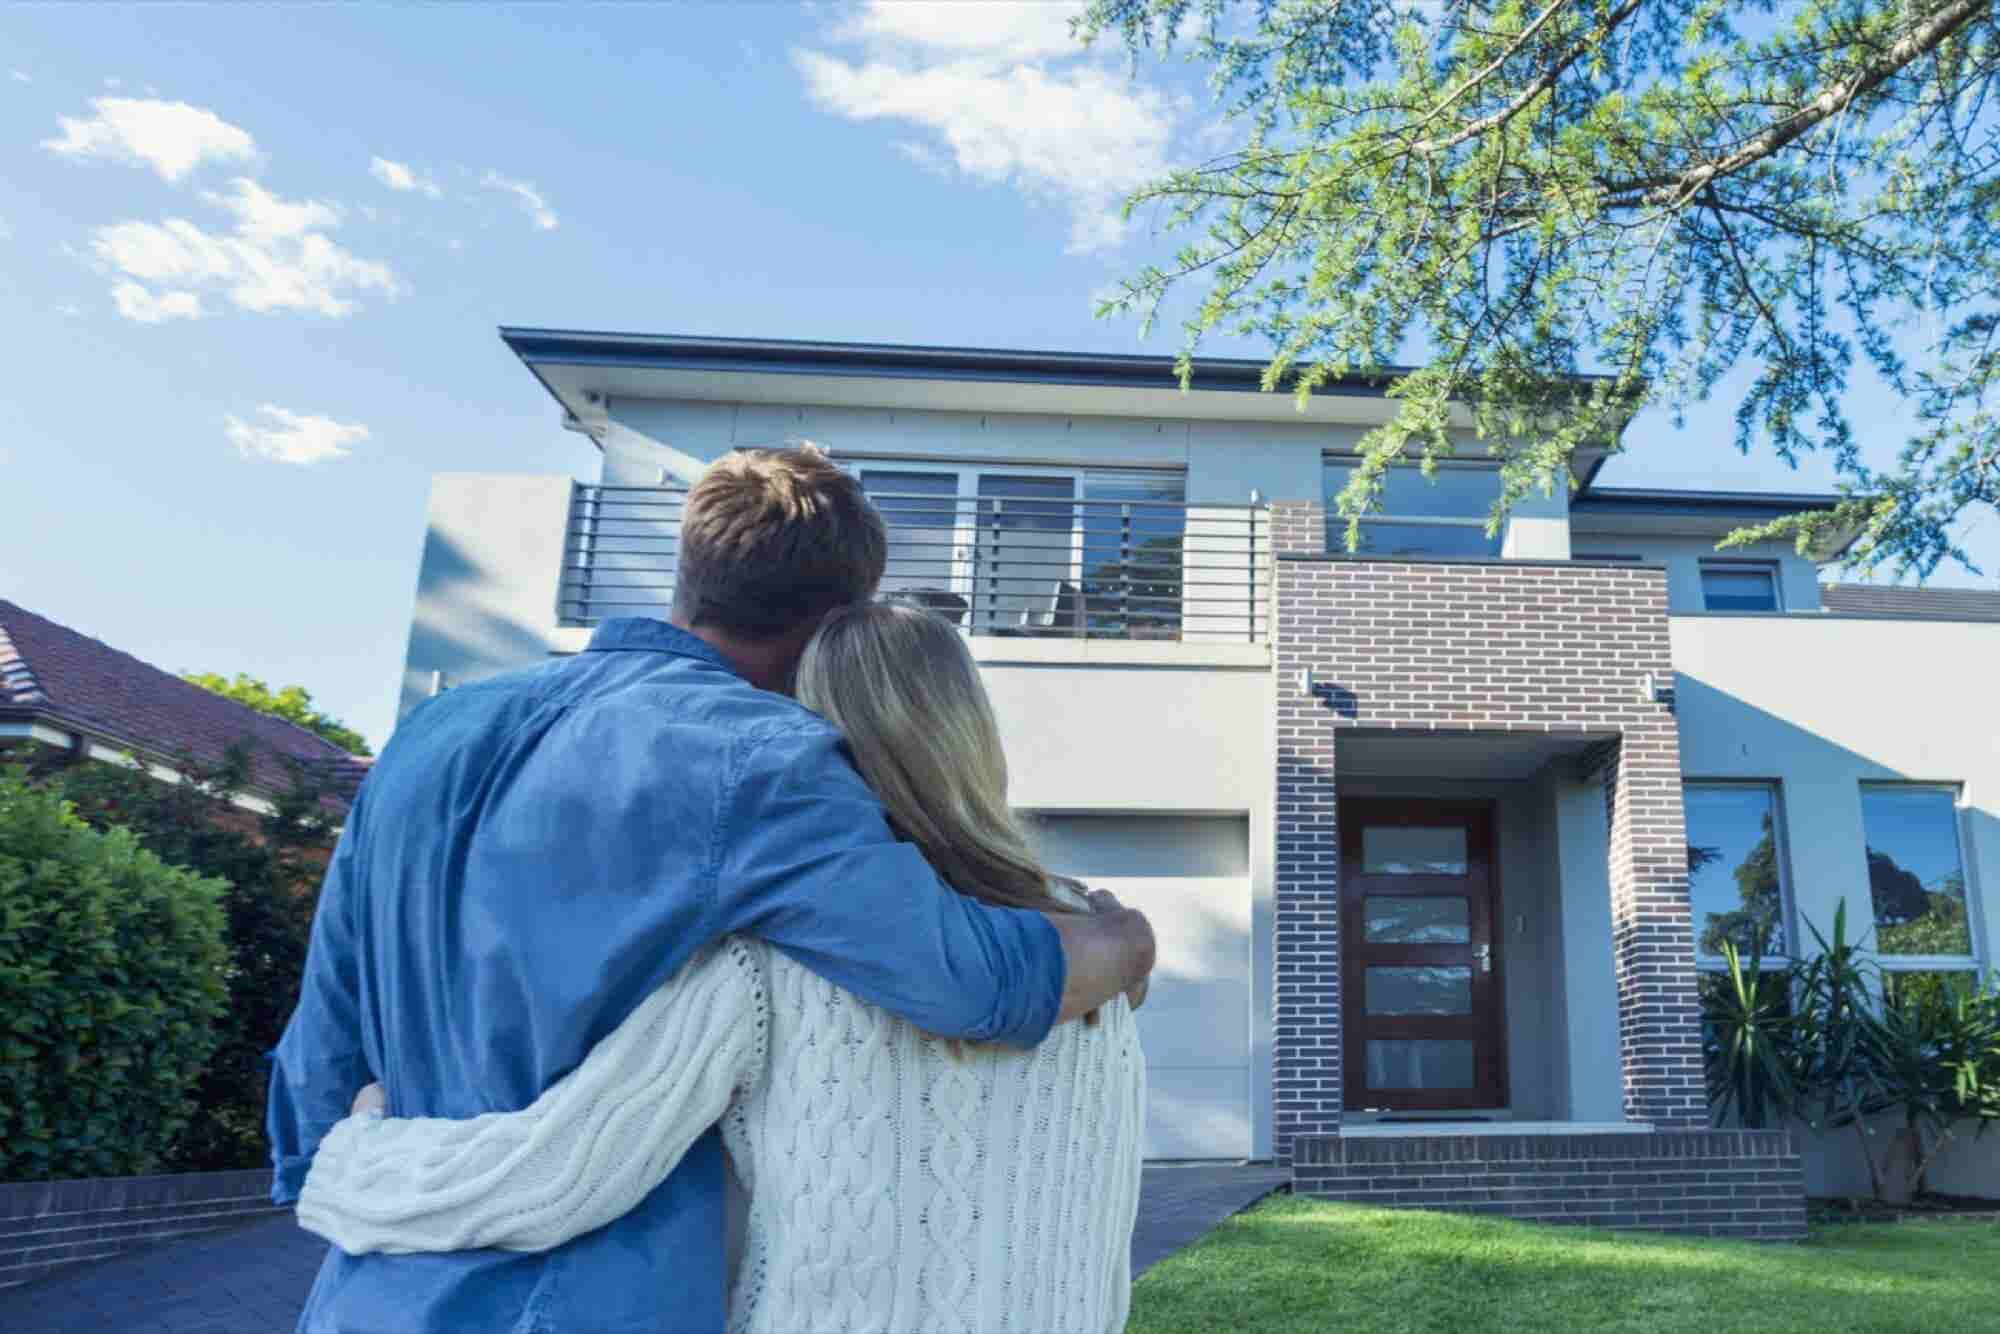 6 Ways to Protect Your Home in a Business Lawsuit